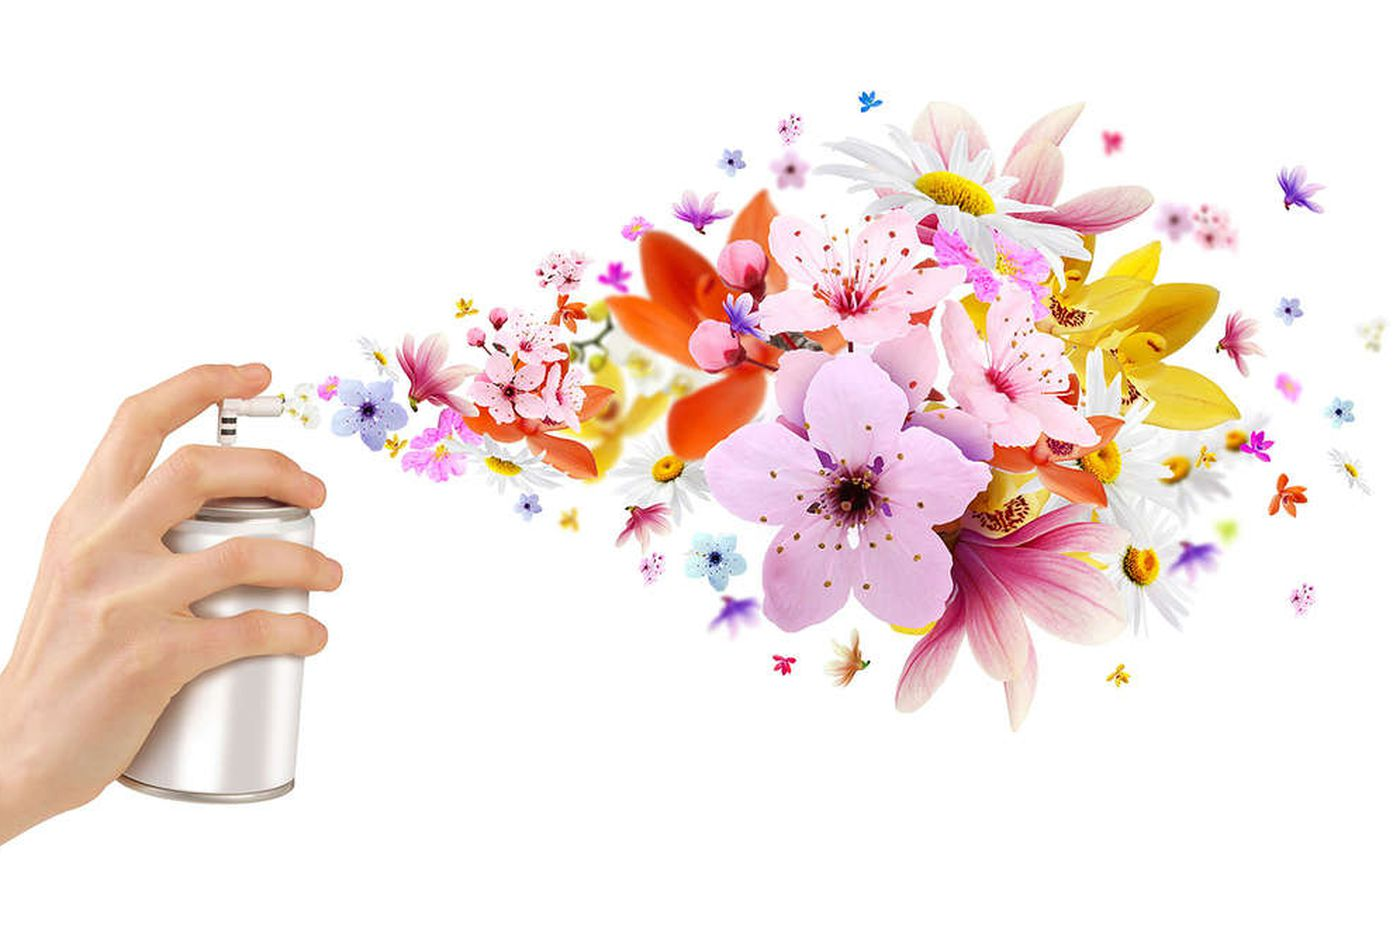 Ask Jennifer Adams: What's the best scent to use when selling a home?